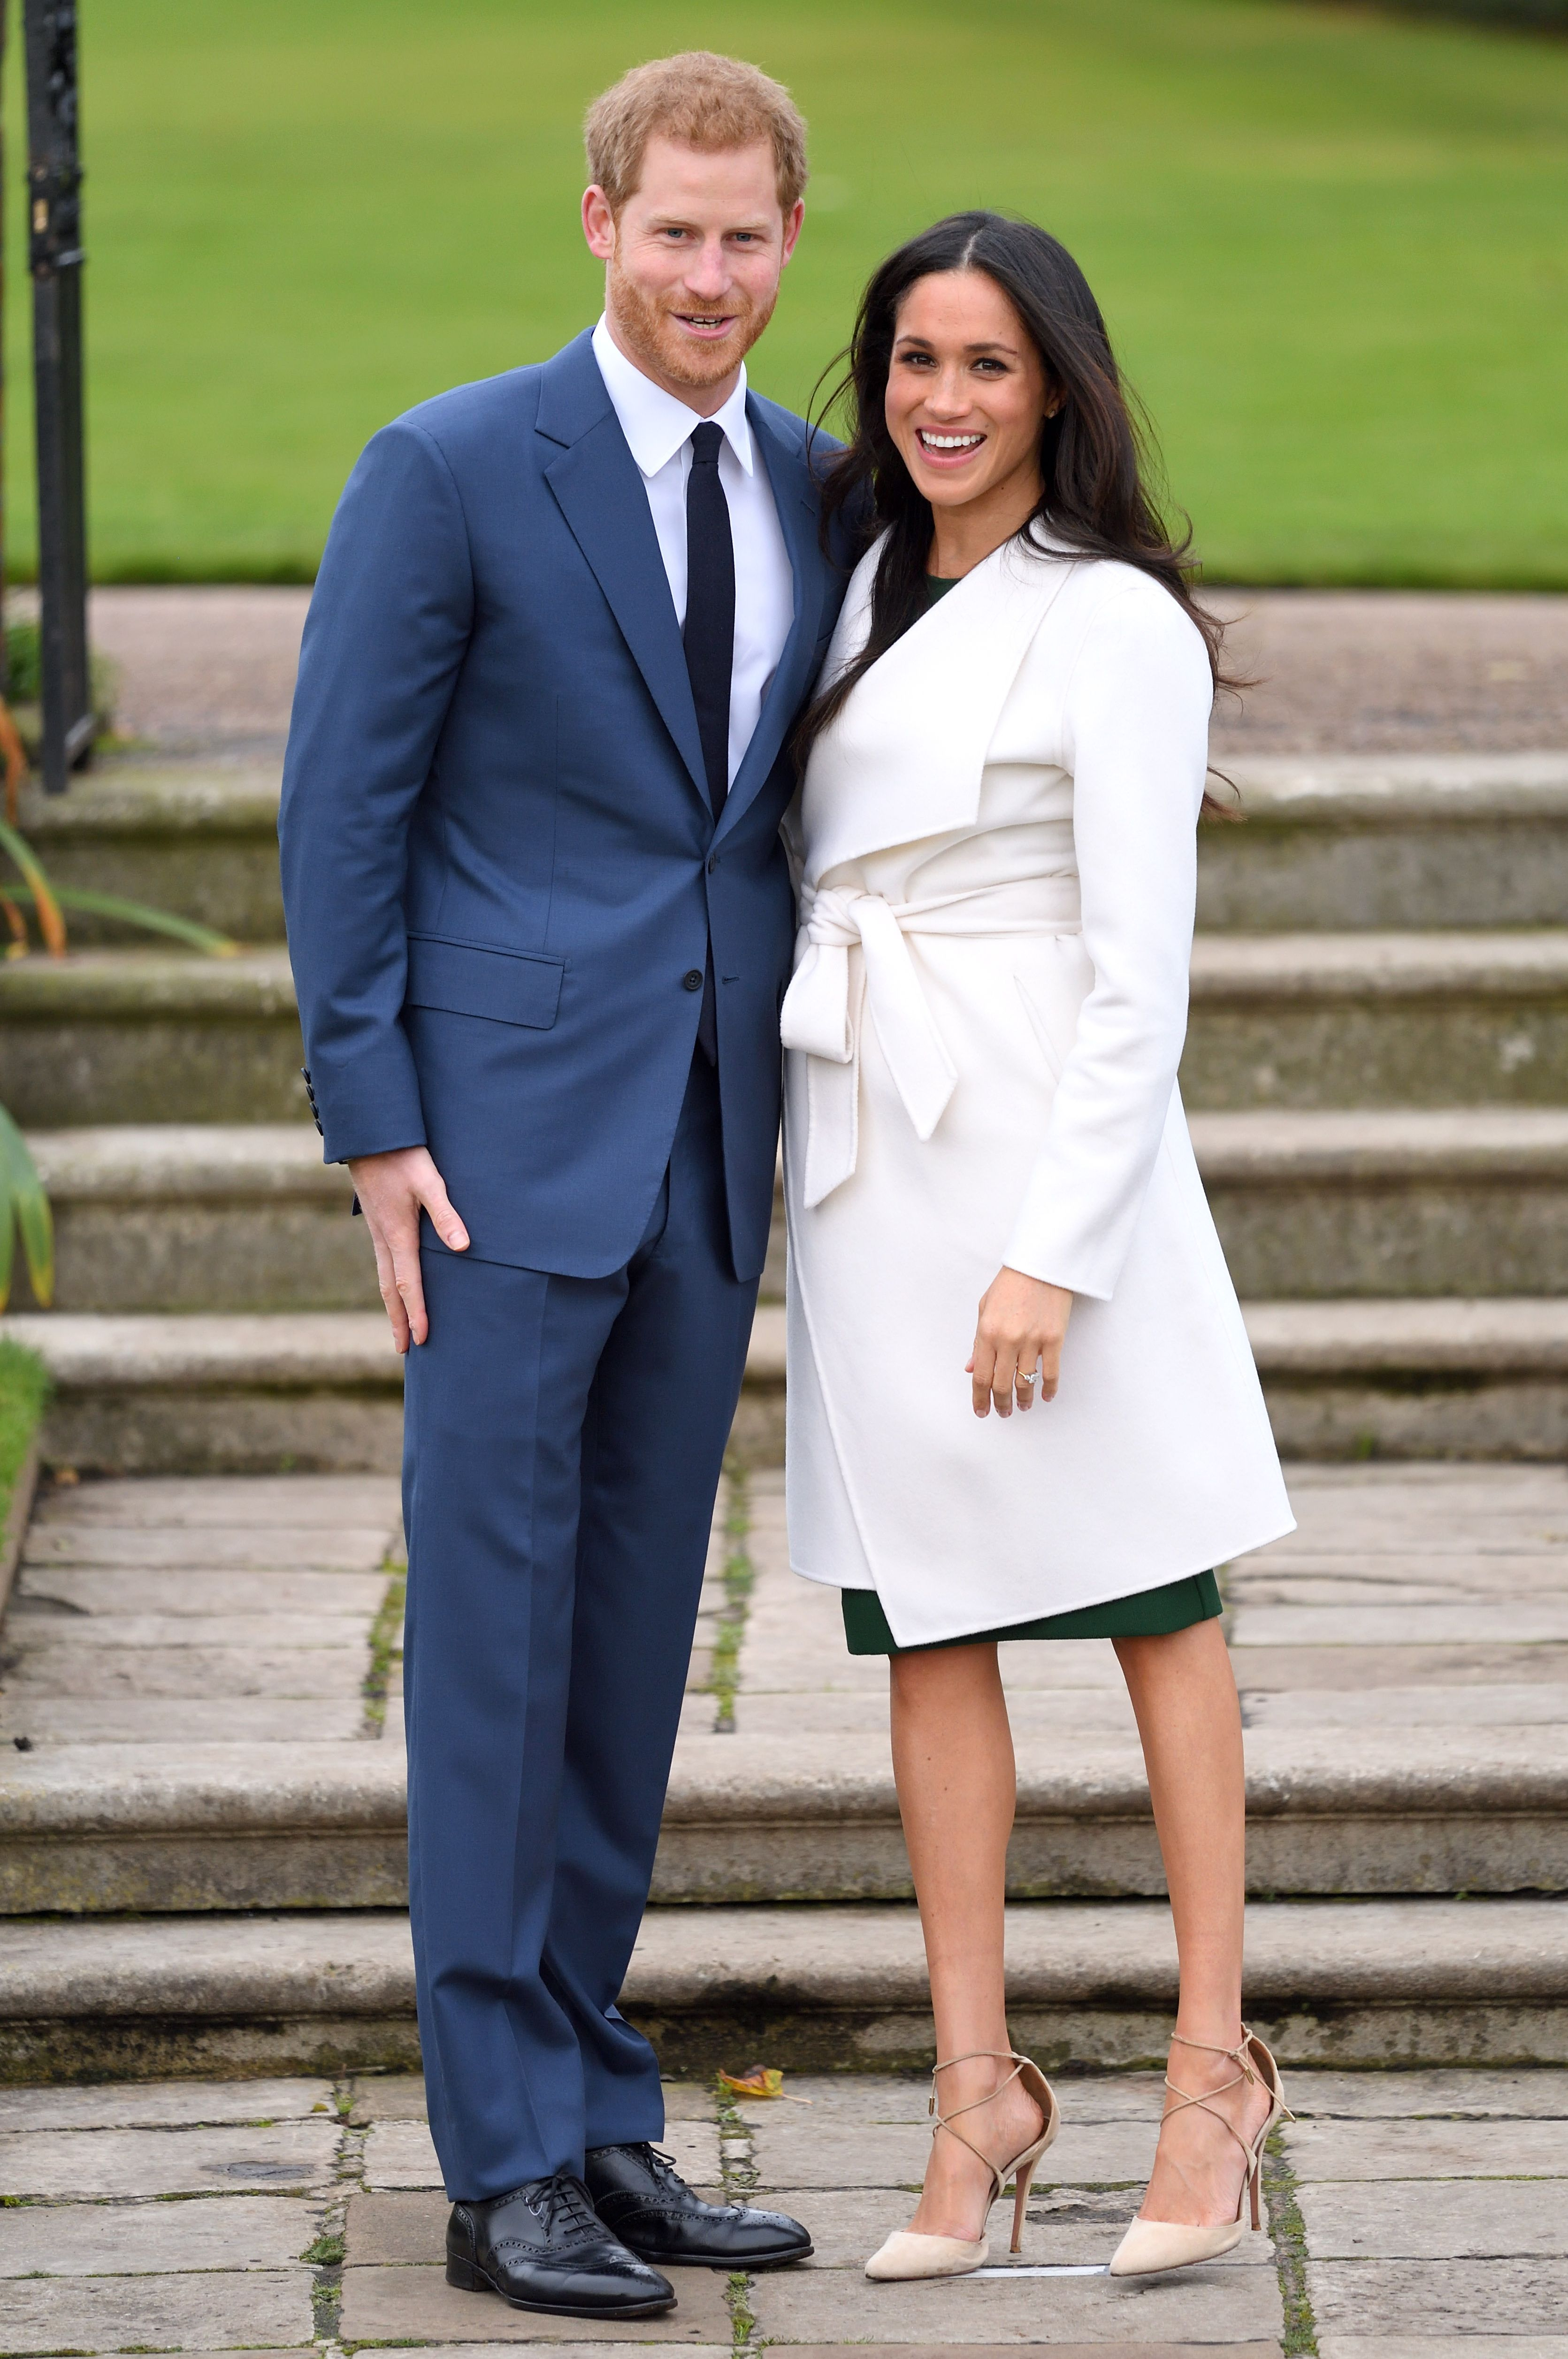 meghan markle red carpet outfit